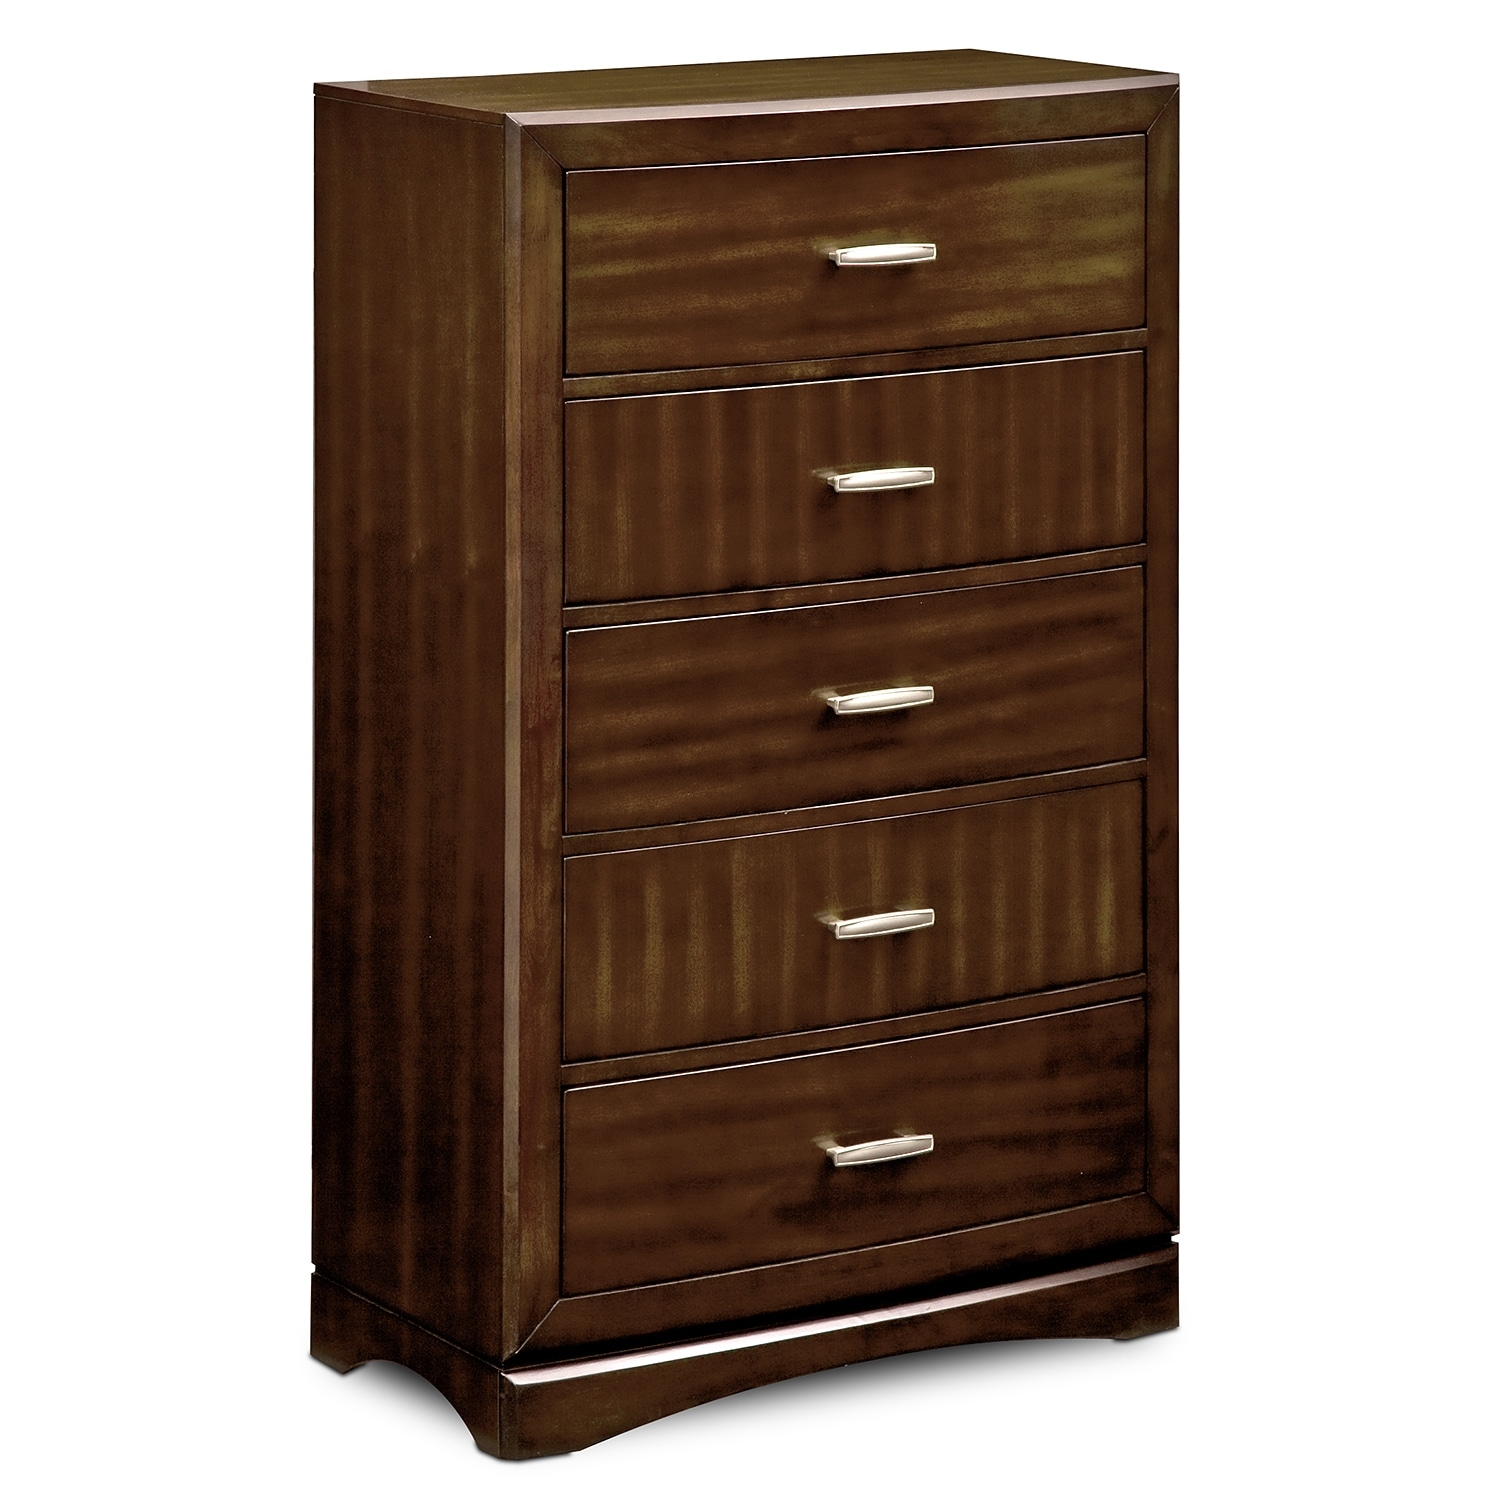 Bedroom Furniture - Toronto Chest